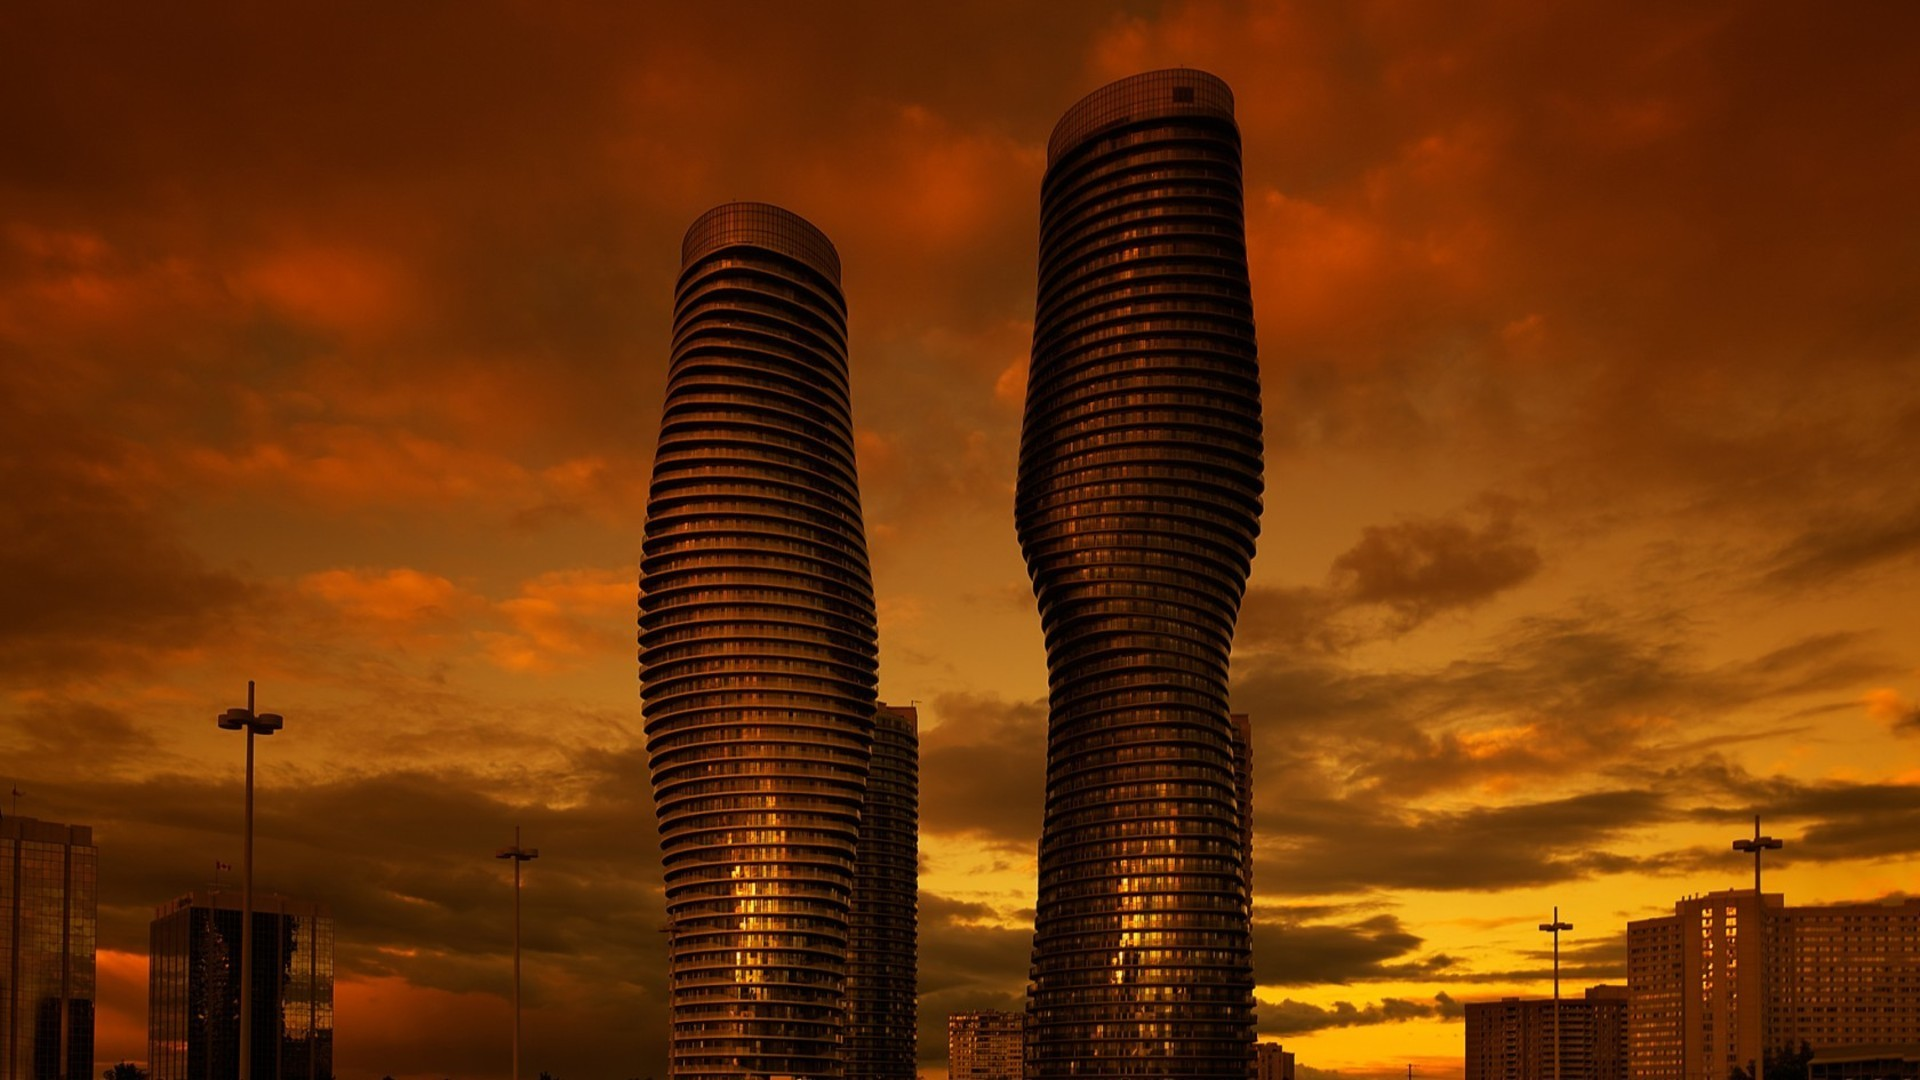 Modern Architecture In Mississauga Ontario Wallpaper